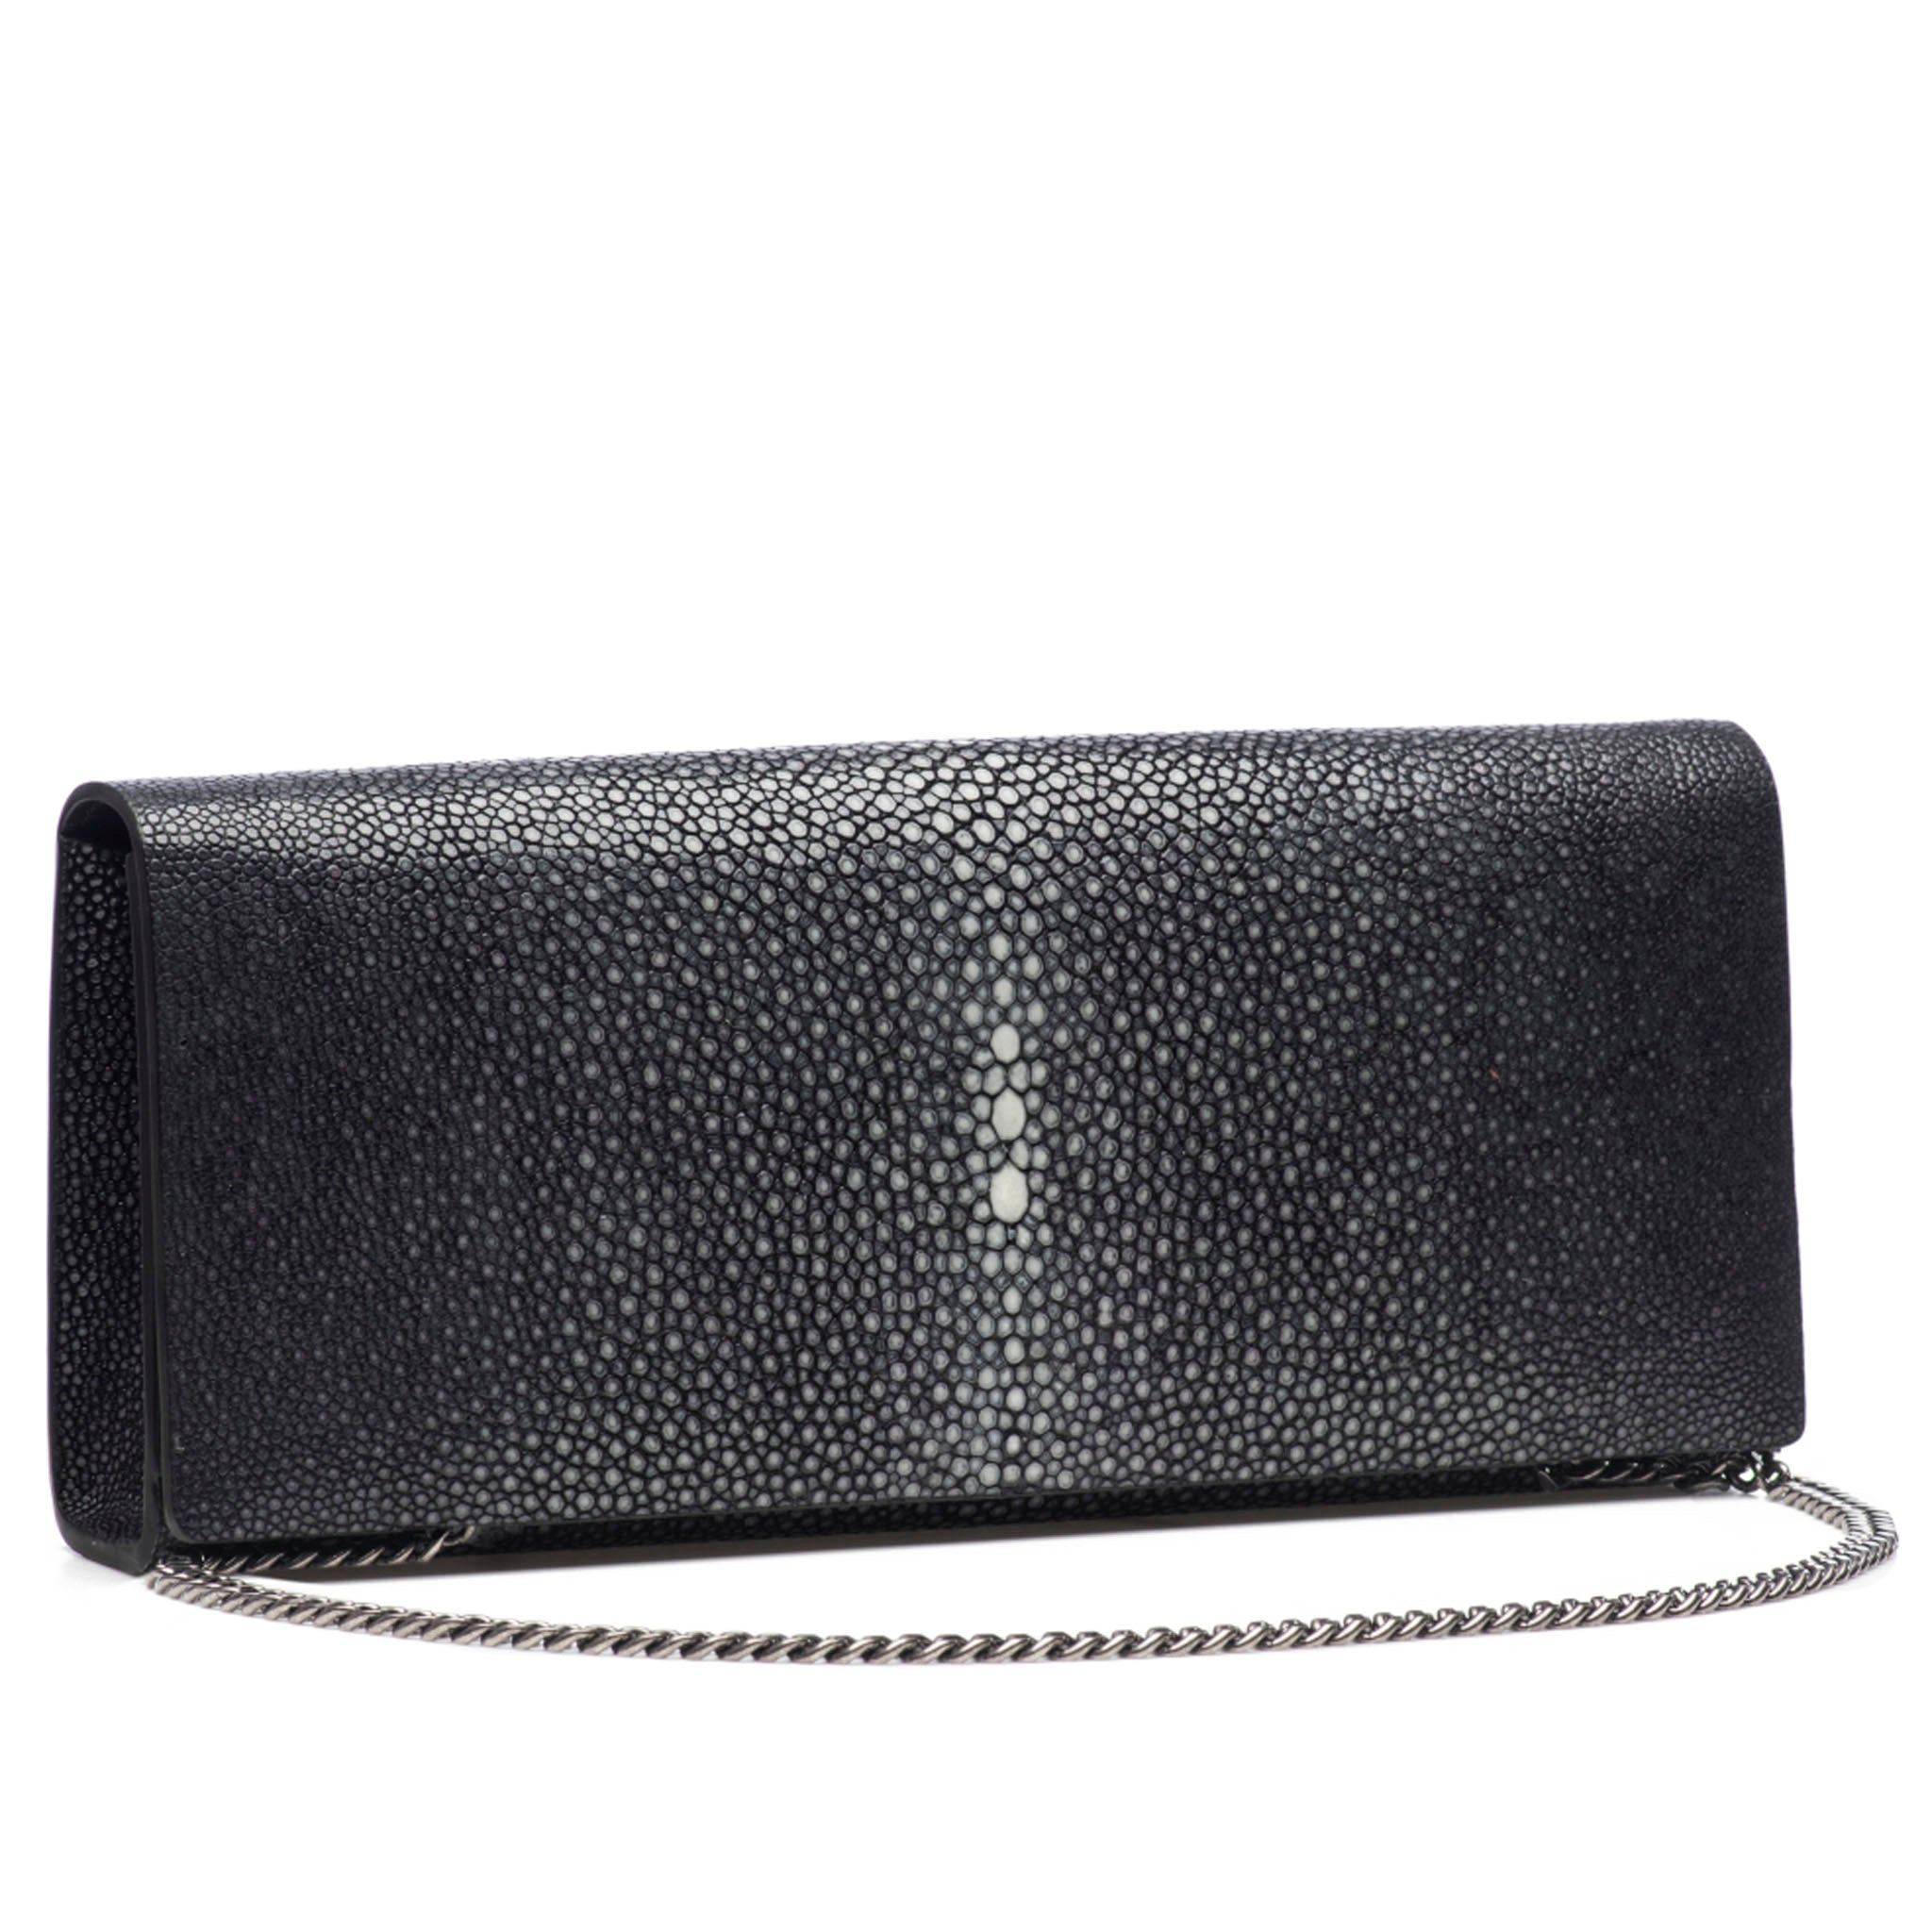 Black Shagreen Clutch Bag Front View With Chain Cleo - Vivo Direct